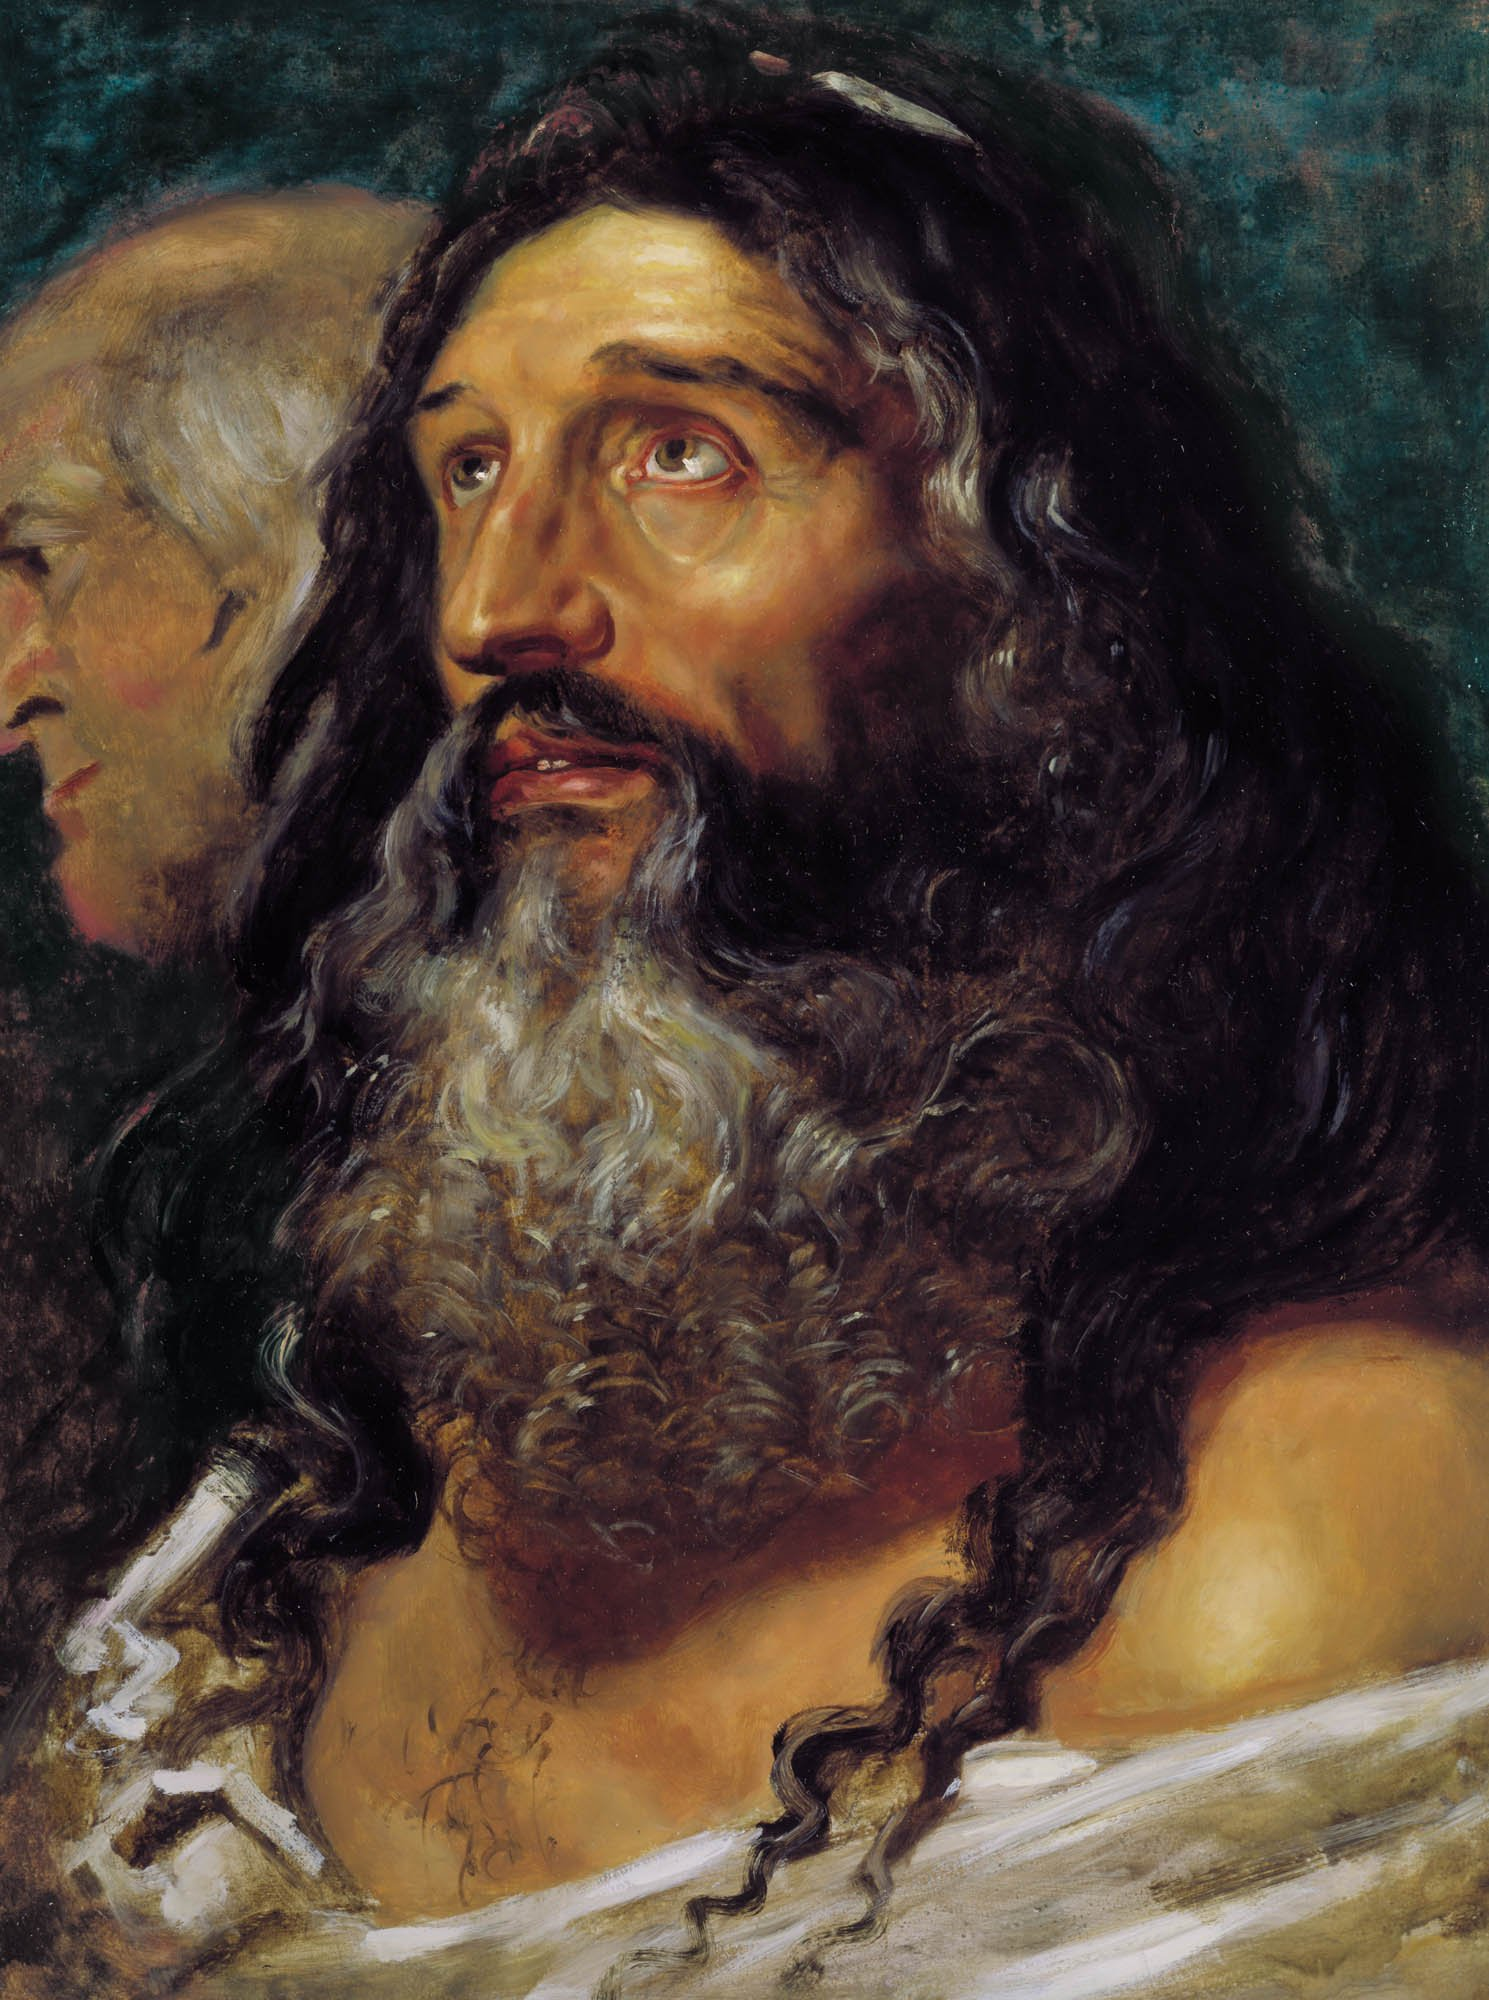 https://0201.nccdn.net/1_2/000/000/135/7cd/Rubens-Copy-1489x2000.jpg